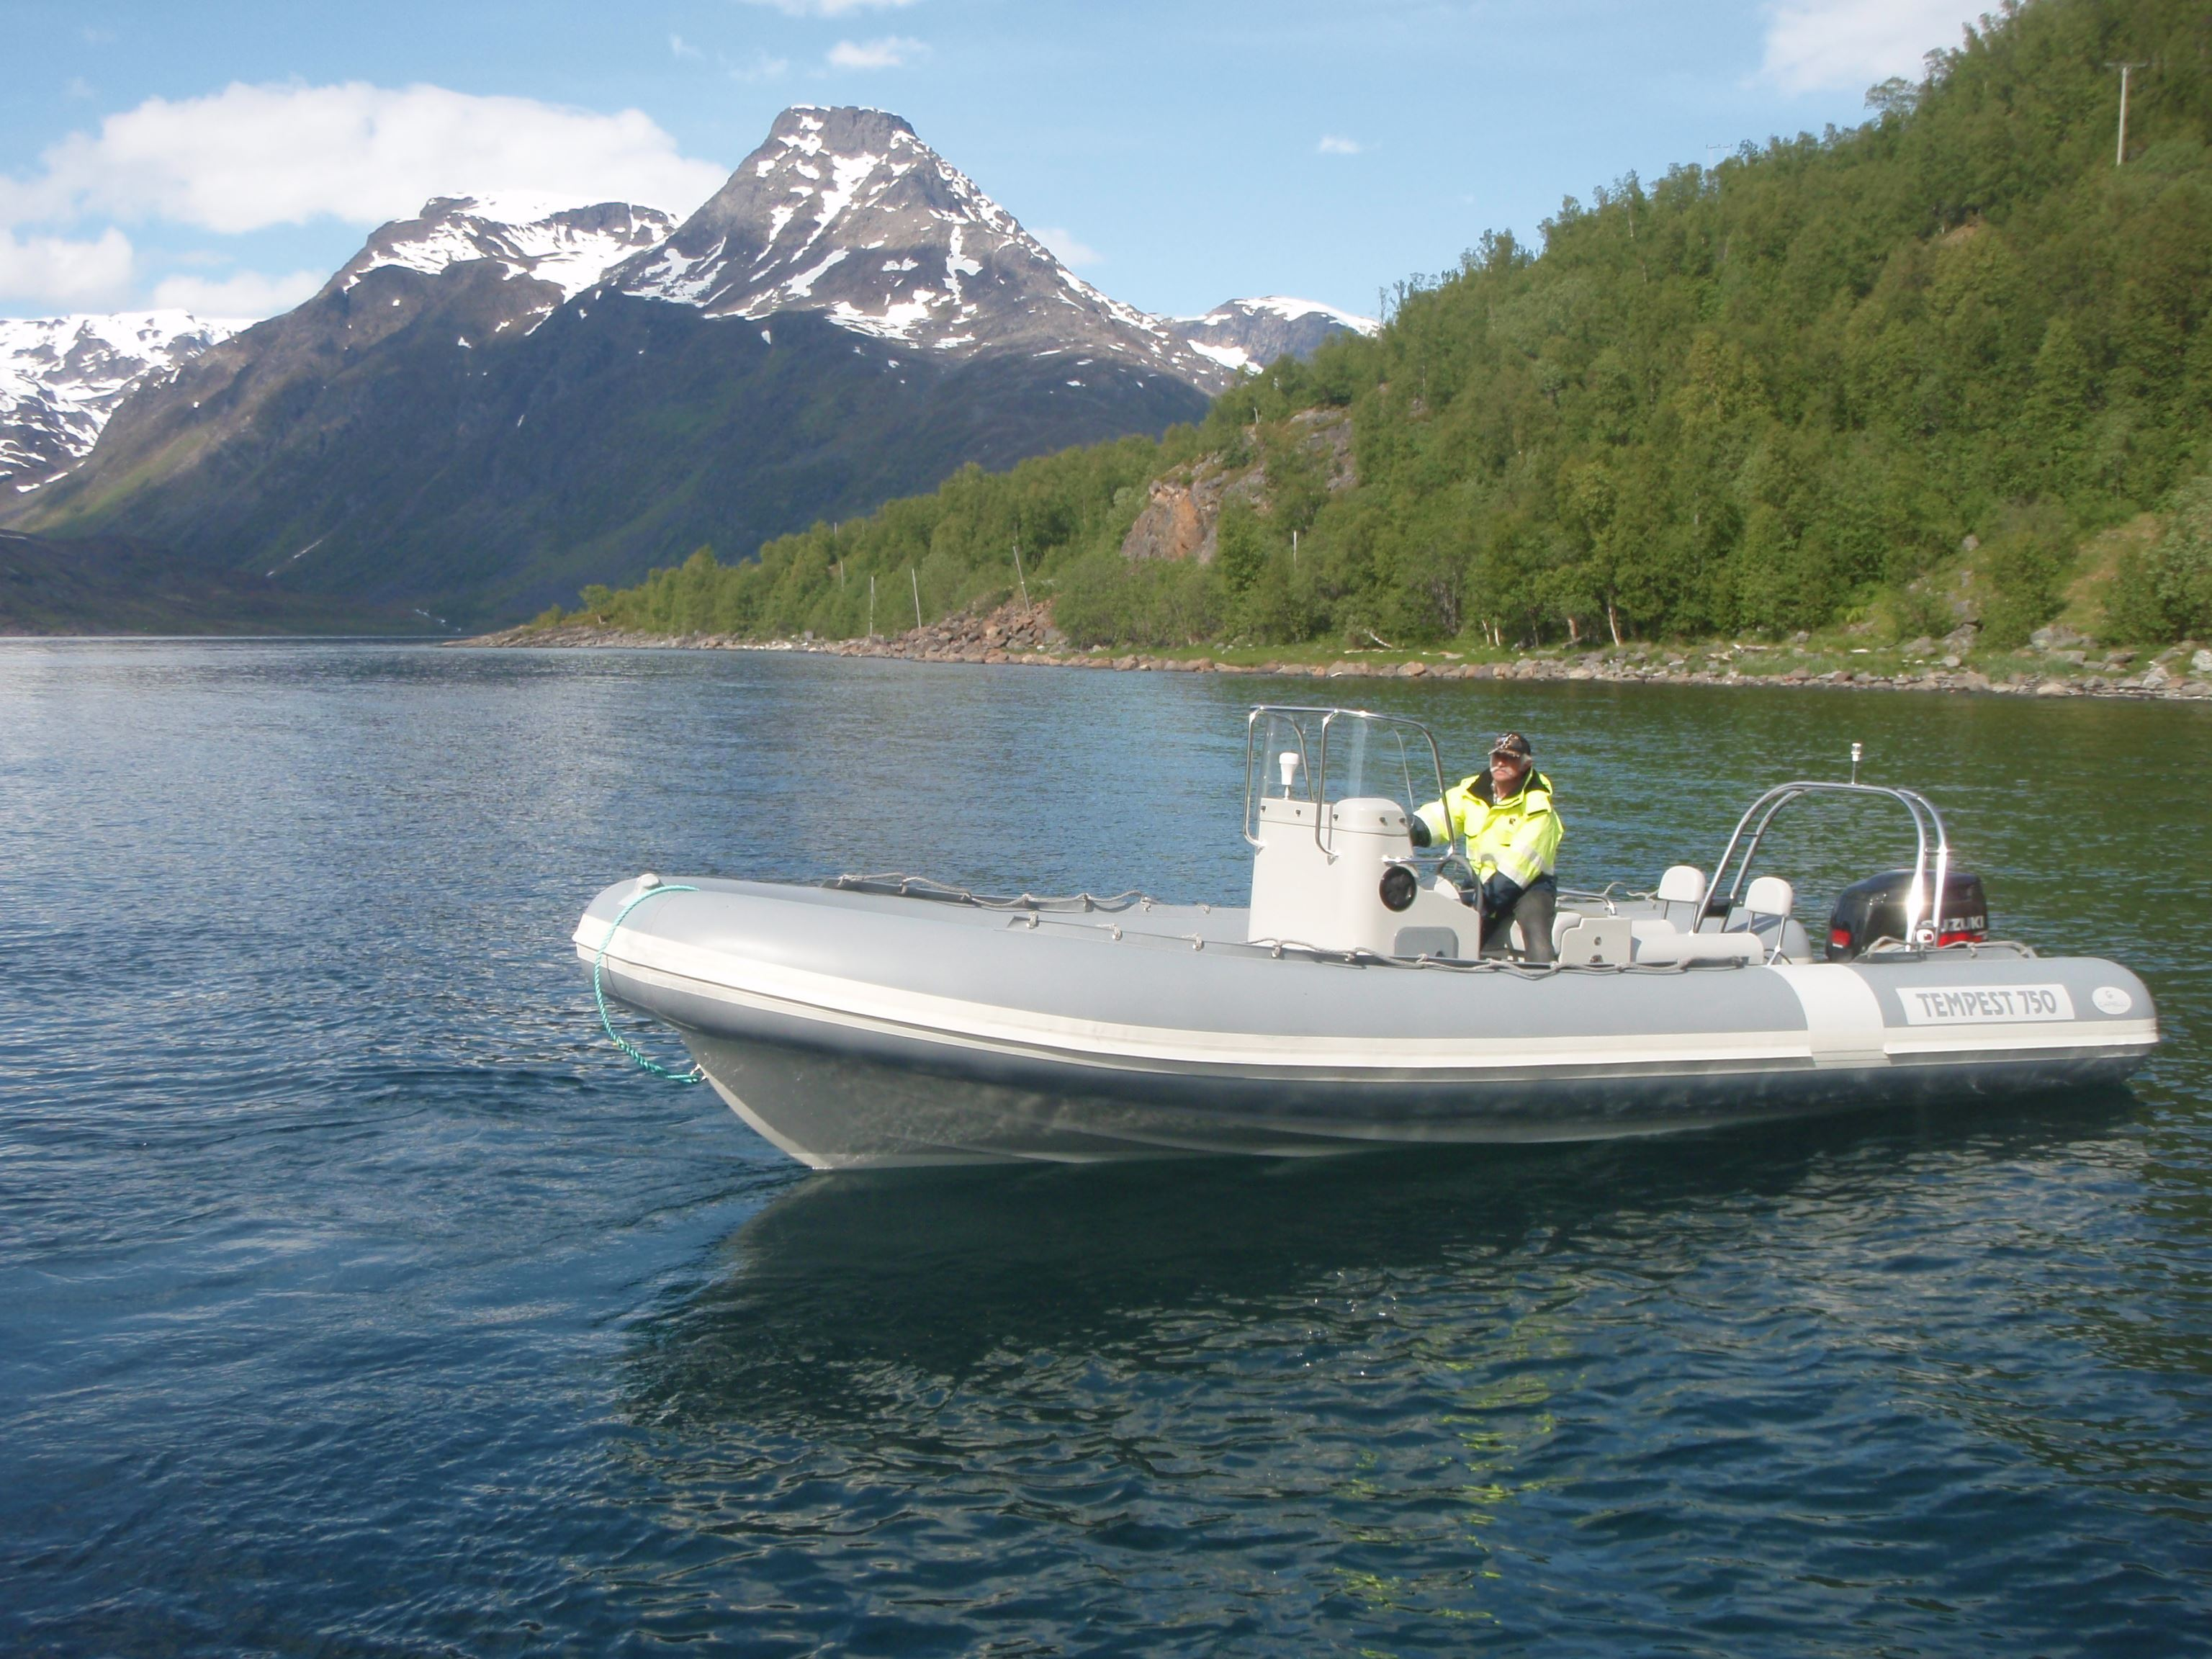 EXPLORE THE WILDFJORDS AND THE GLACIER WITH RIB